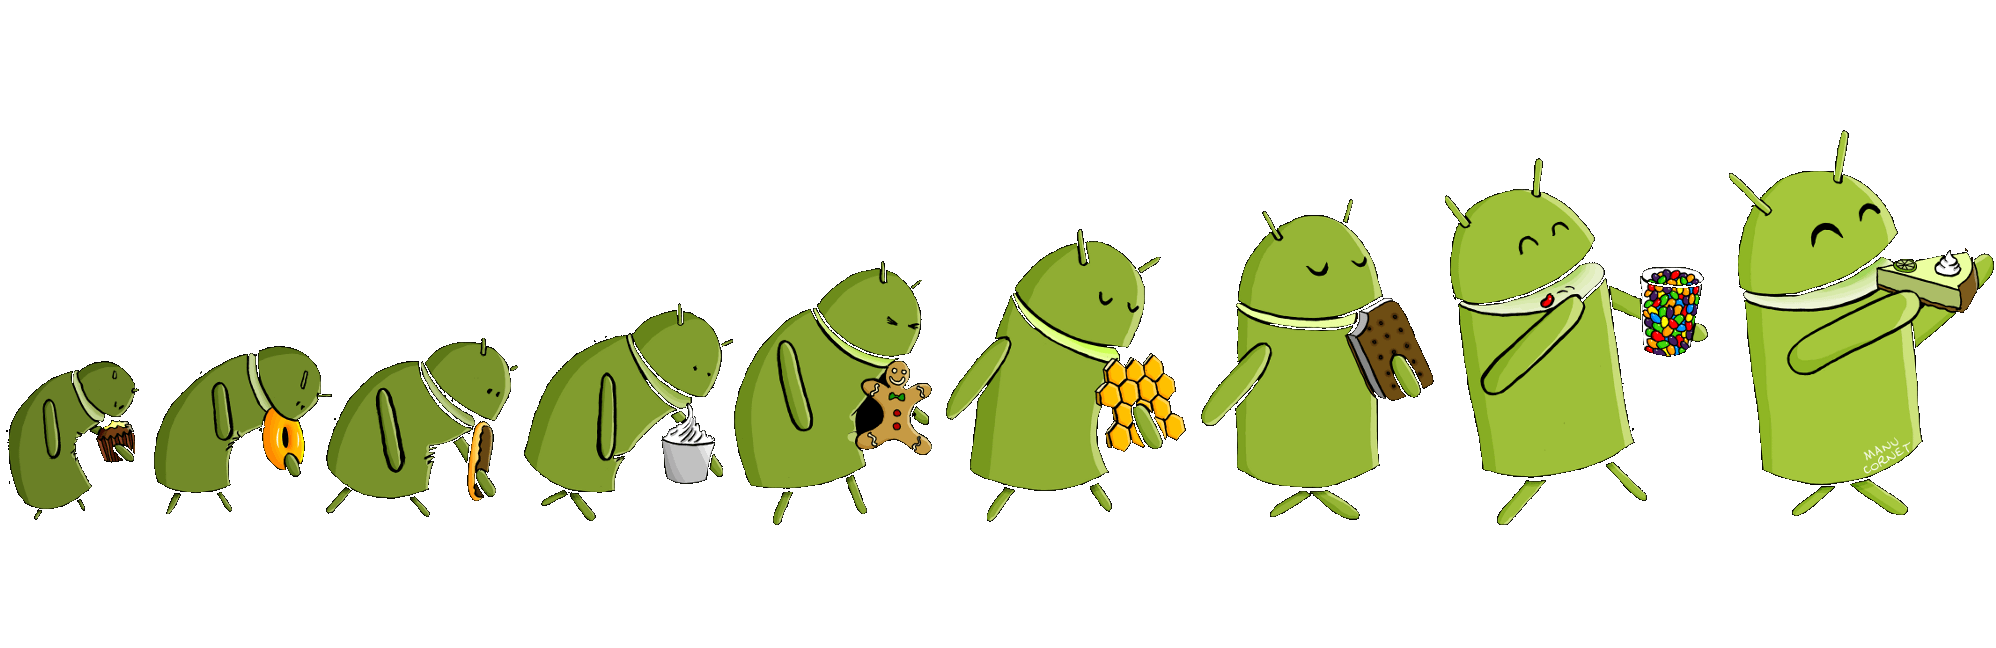 Android evolucao